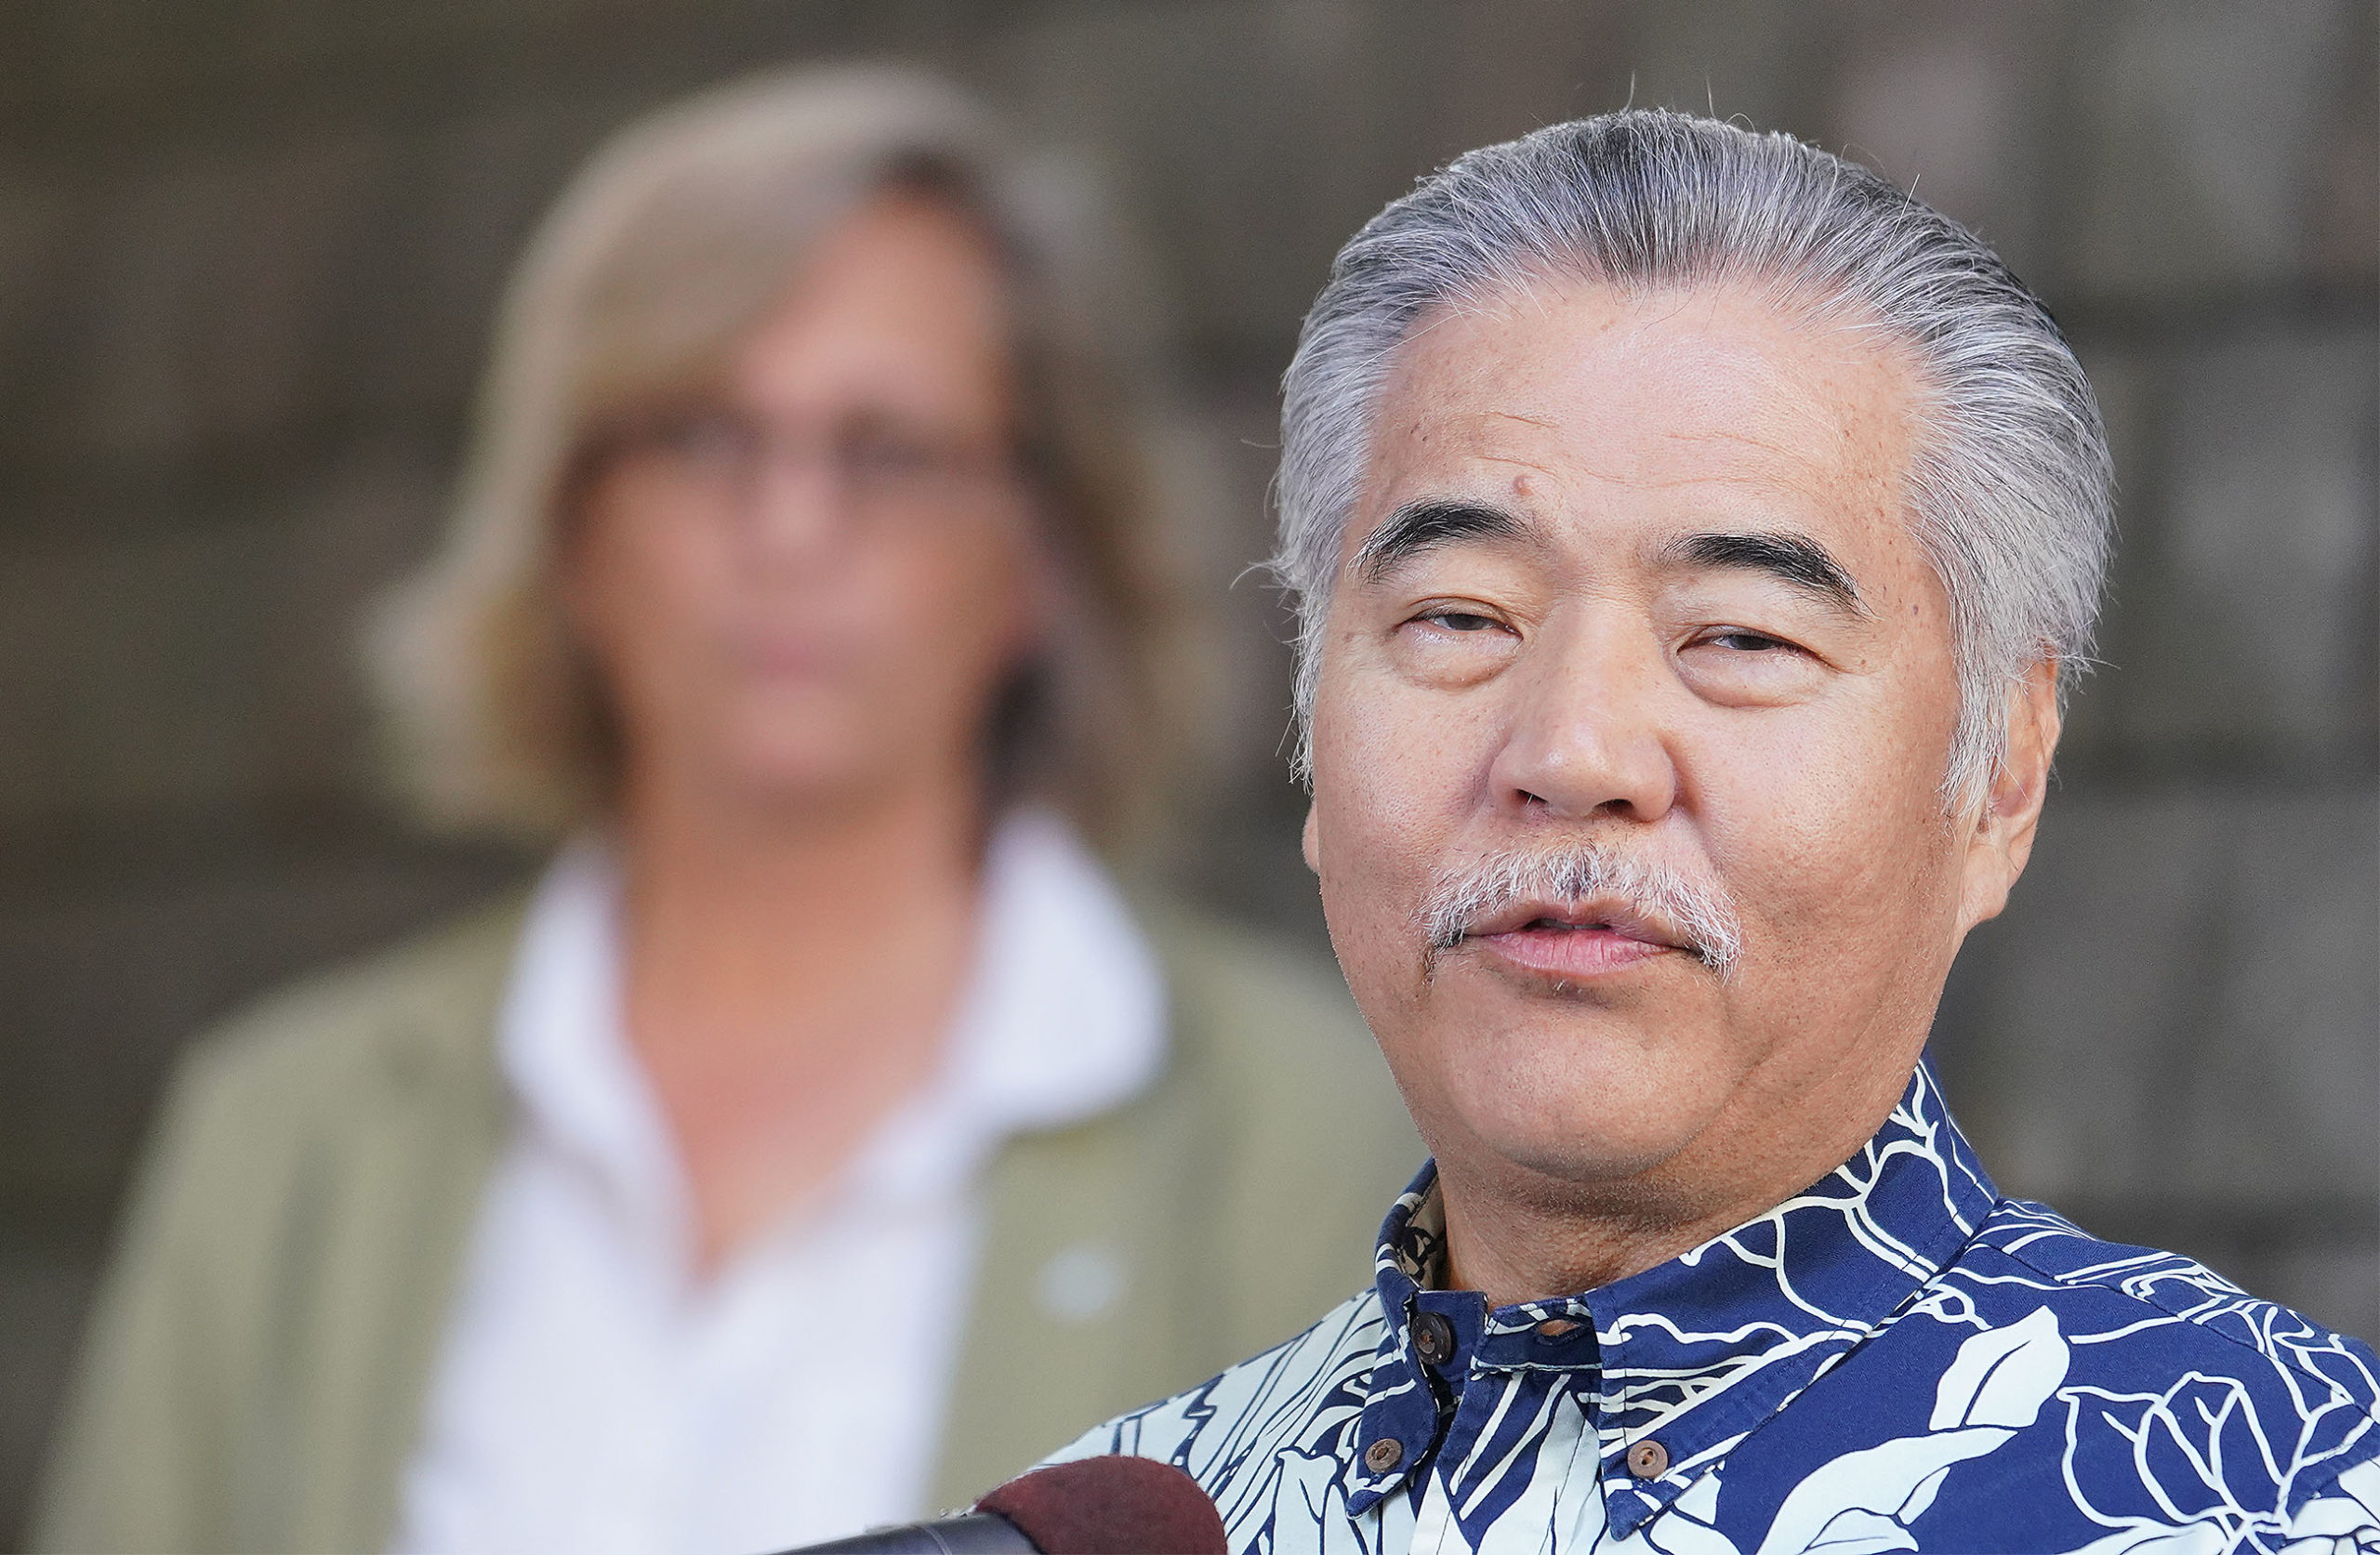 Governor David Ige announces a 14 day quarantine for all visitors to Hawaii due to Coronavirus outbreak.